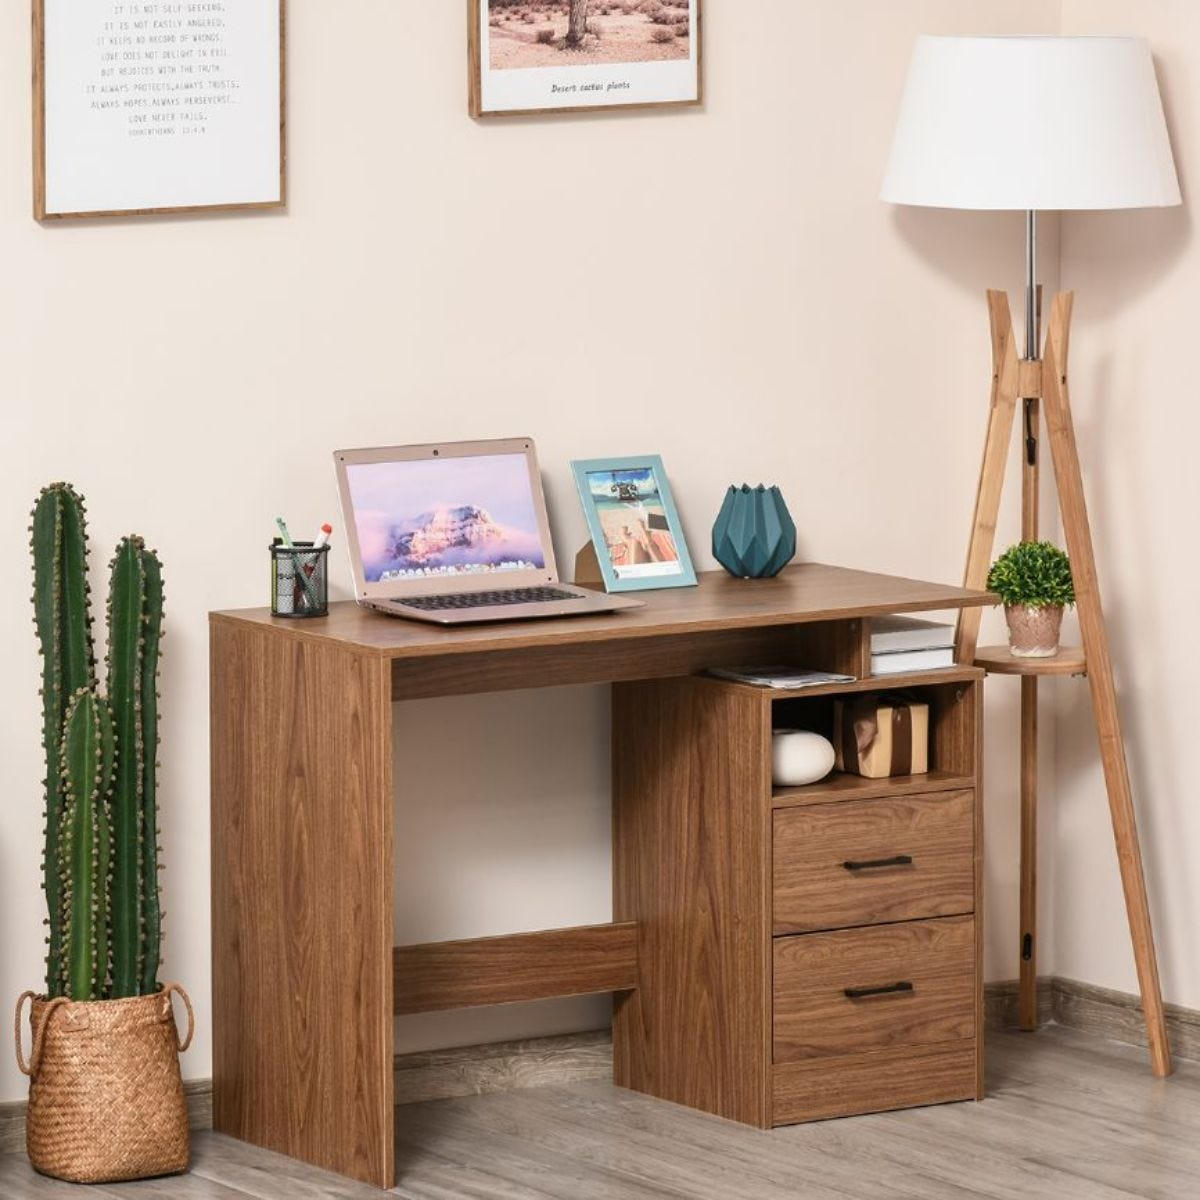 Computer Desk With Shelf Drawer For Home Office Brown Wood Grain Effect